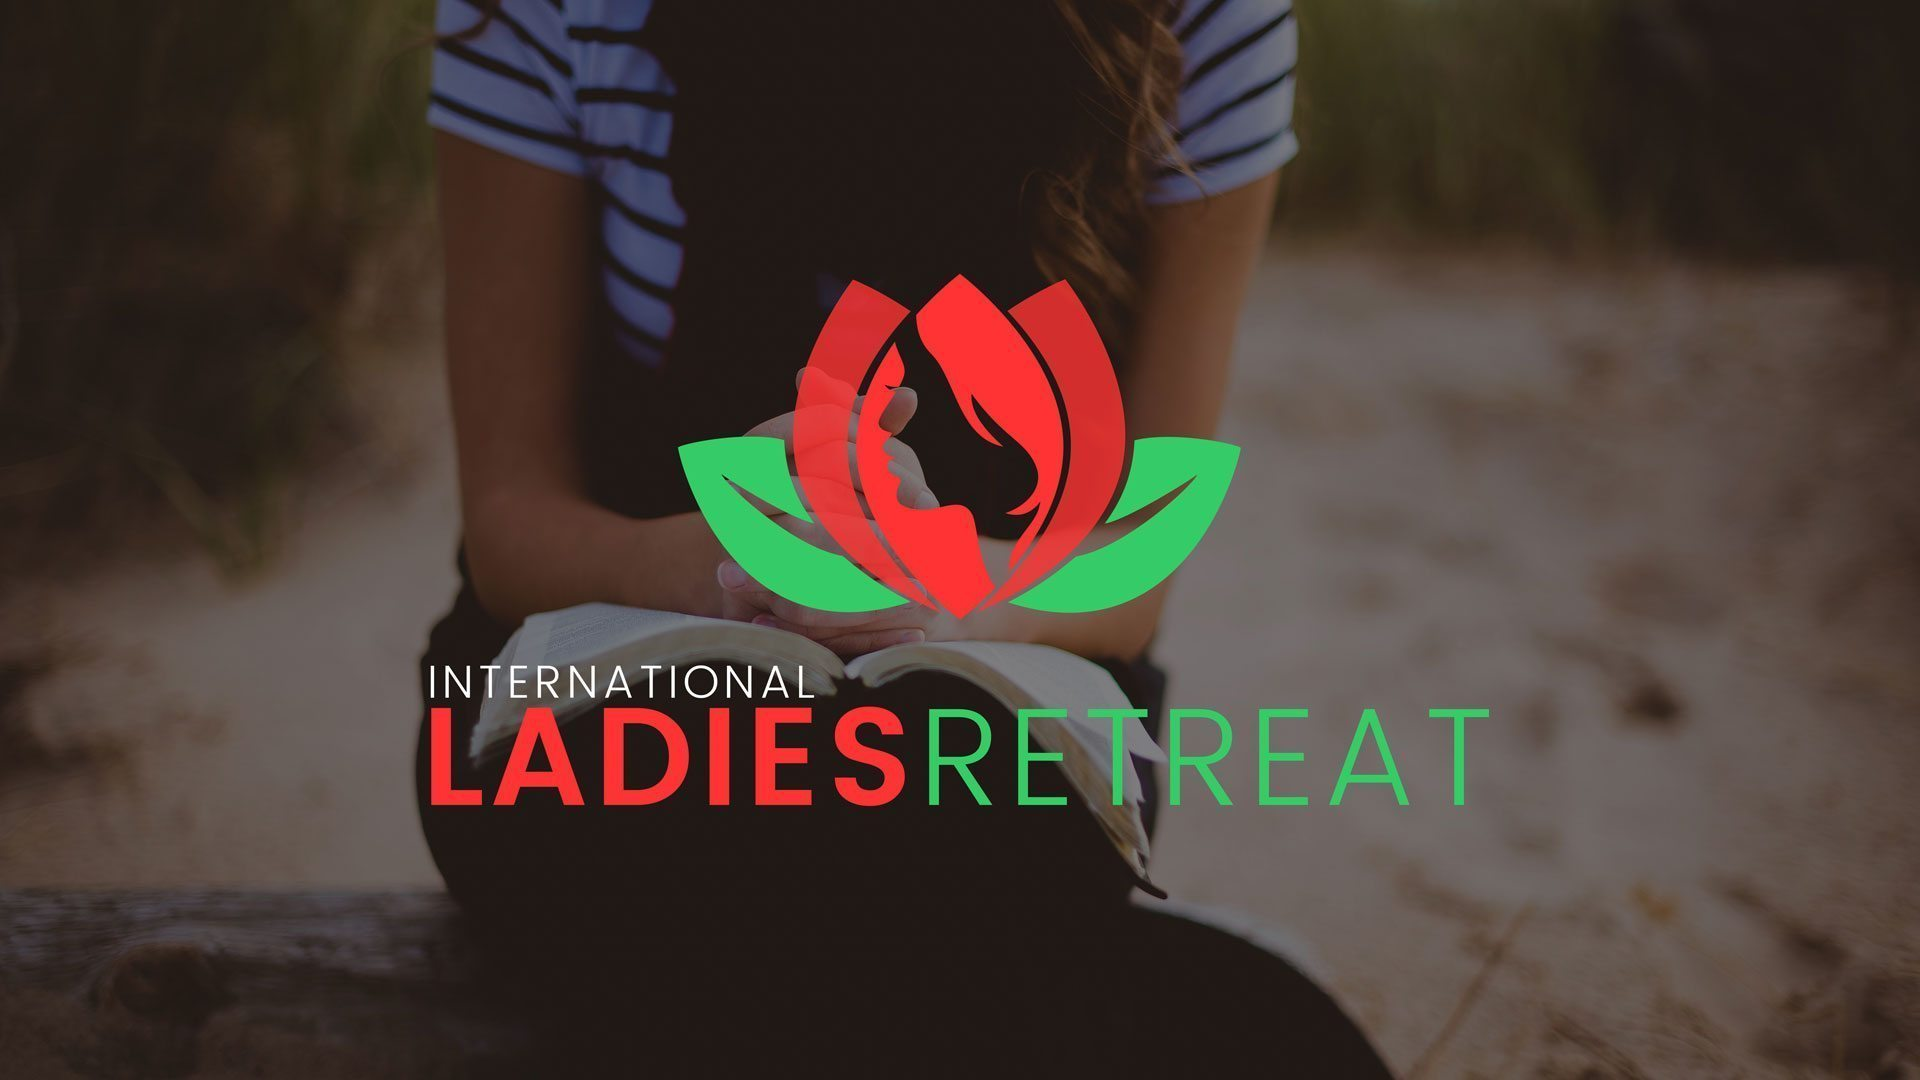 International Ladies Retreat